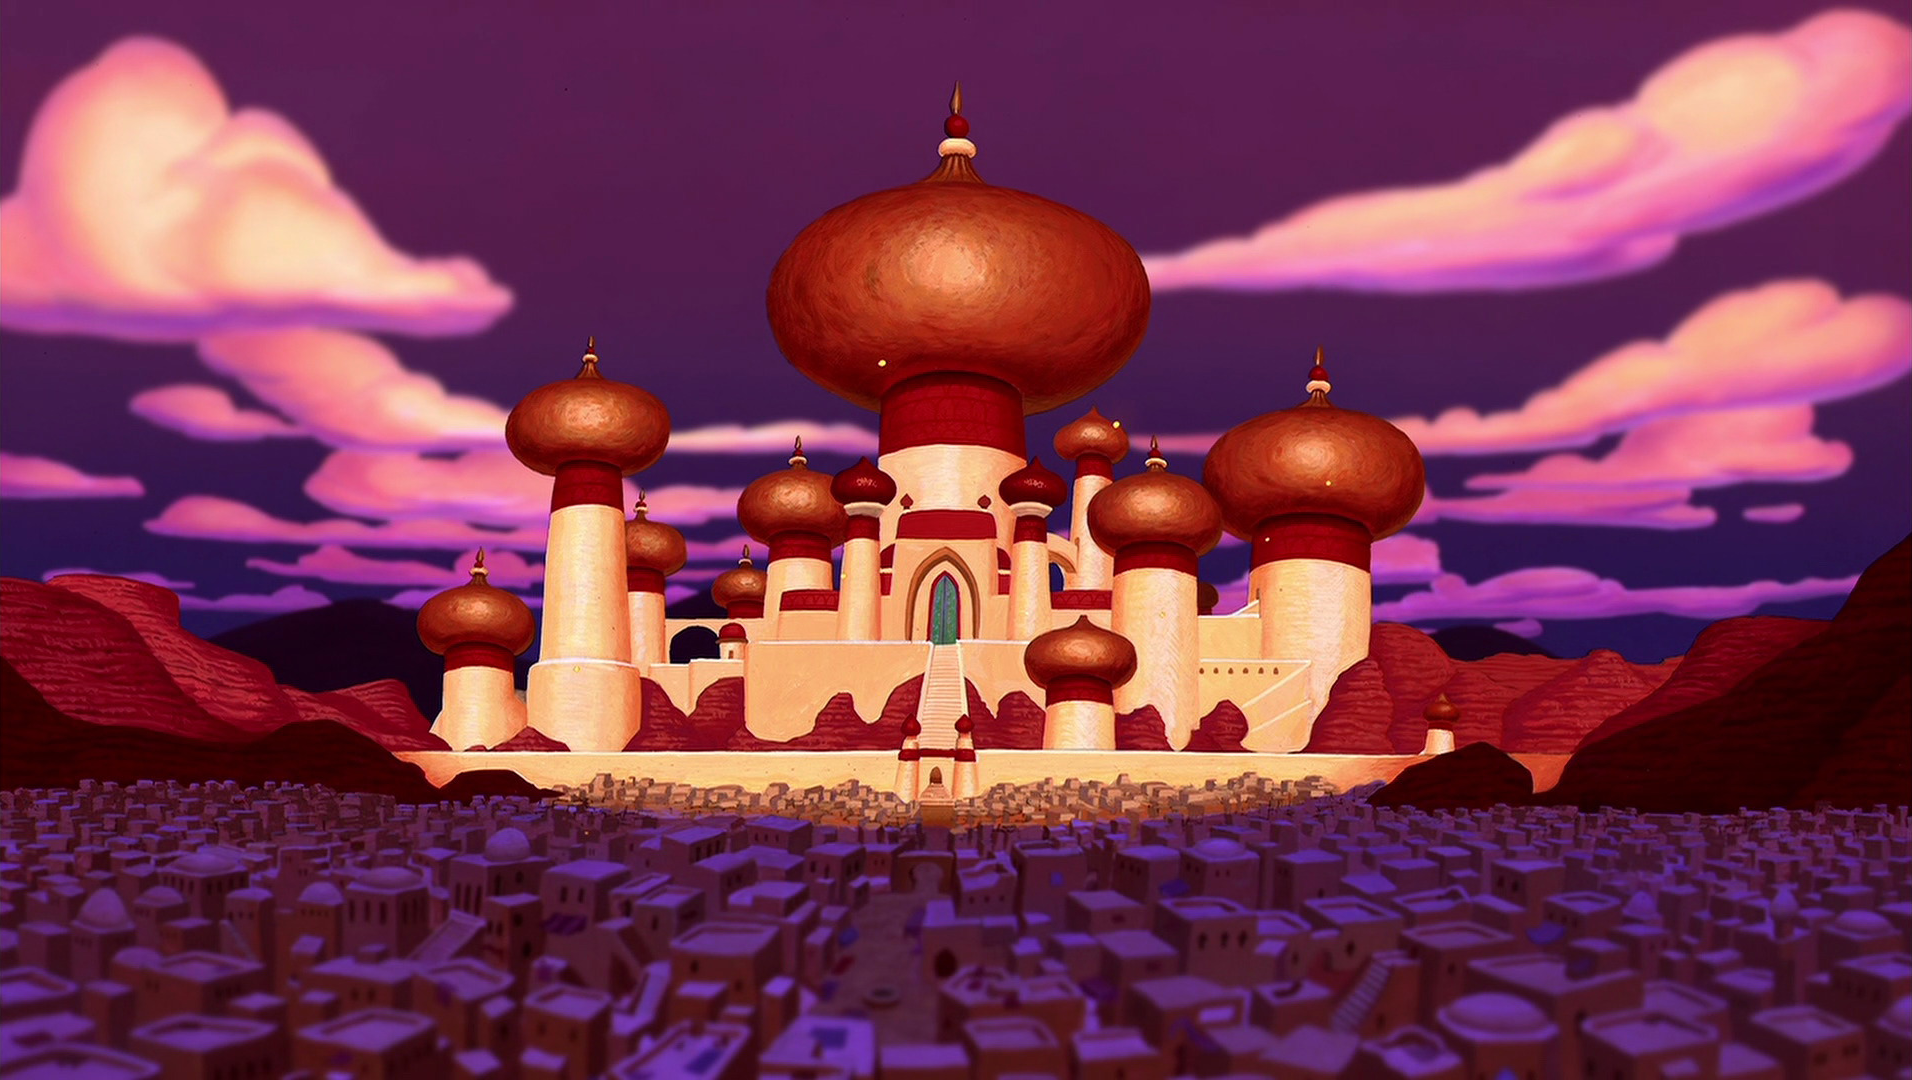 Agrabah Disney Wiki Fandom Powered By Wikia